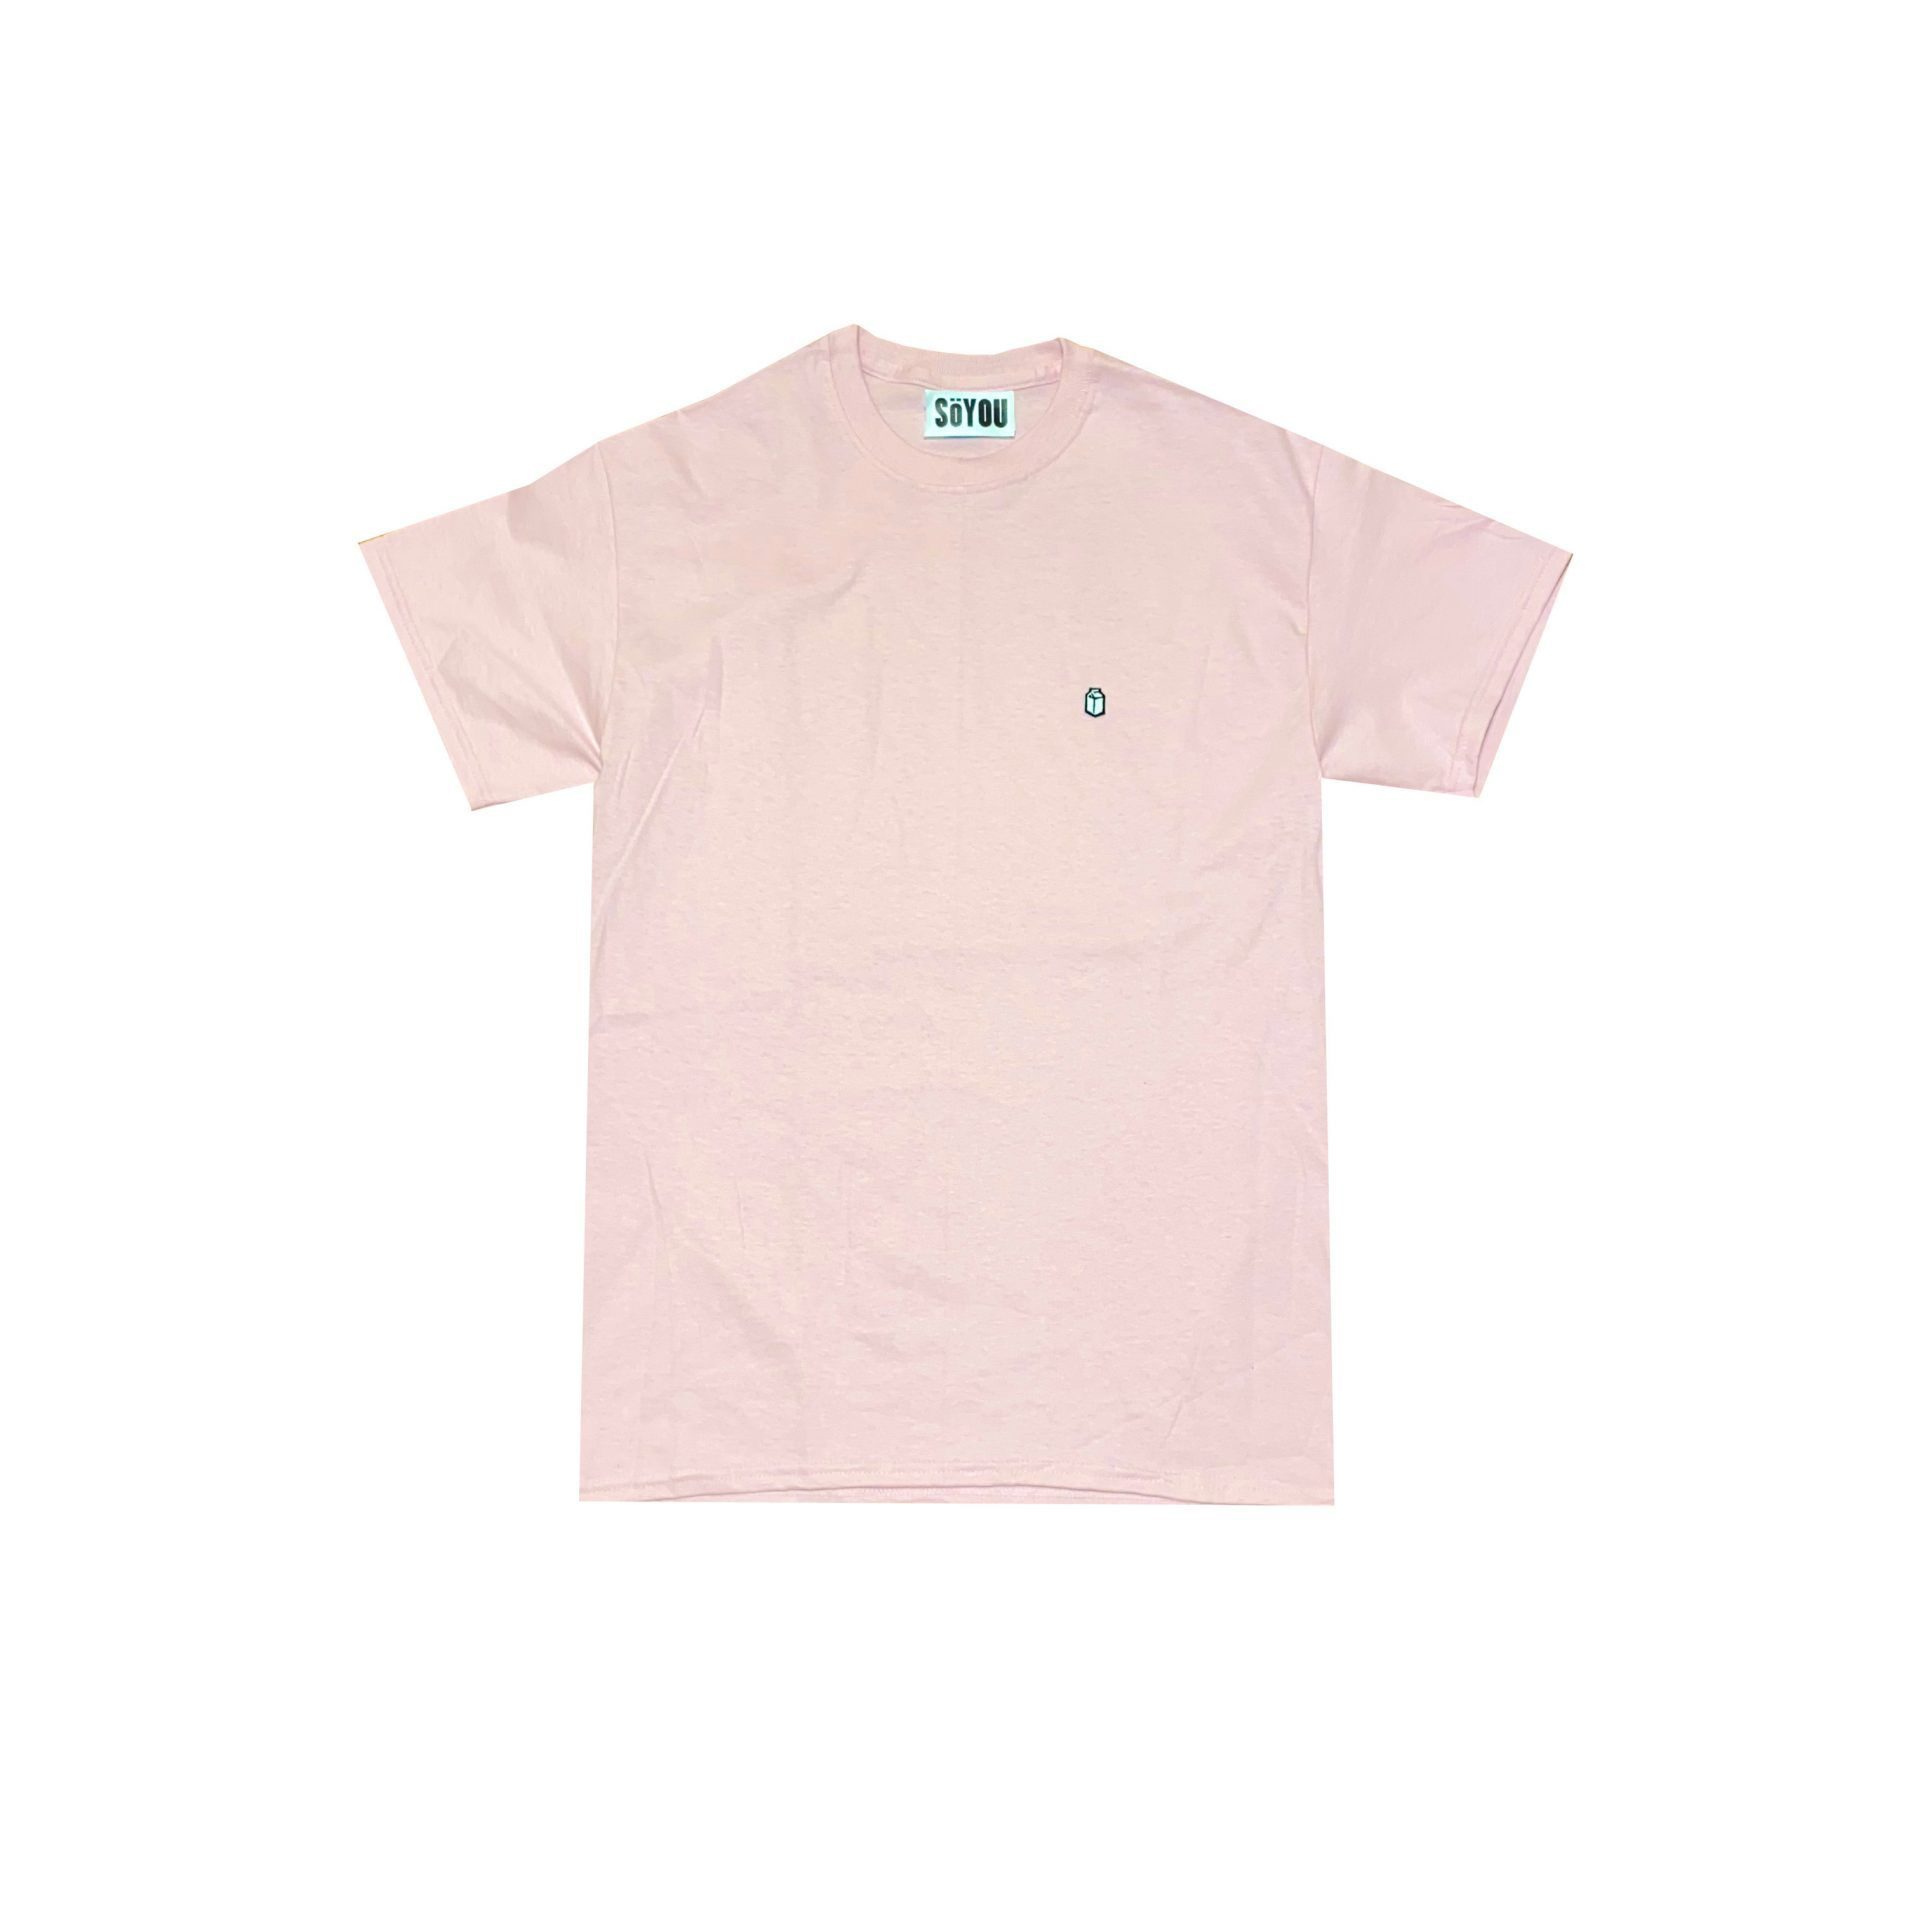 SoYou Clothing Basics T-Shirt in Hibiscus Pink